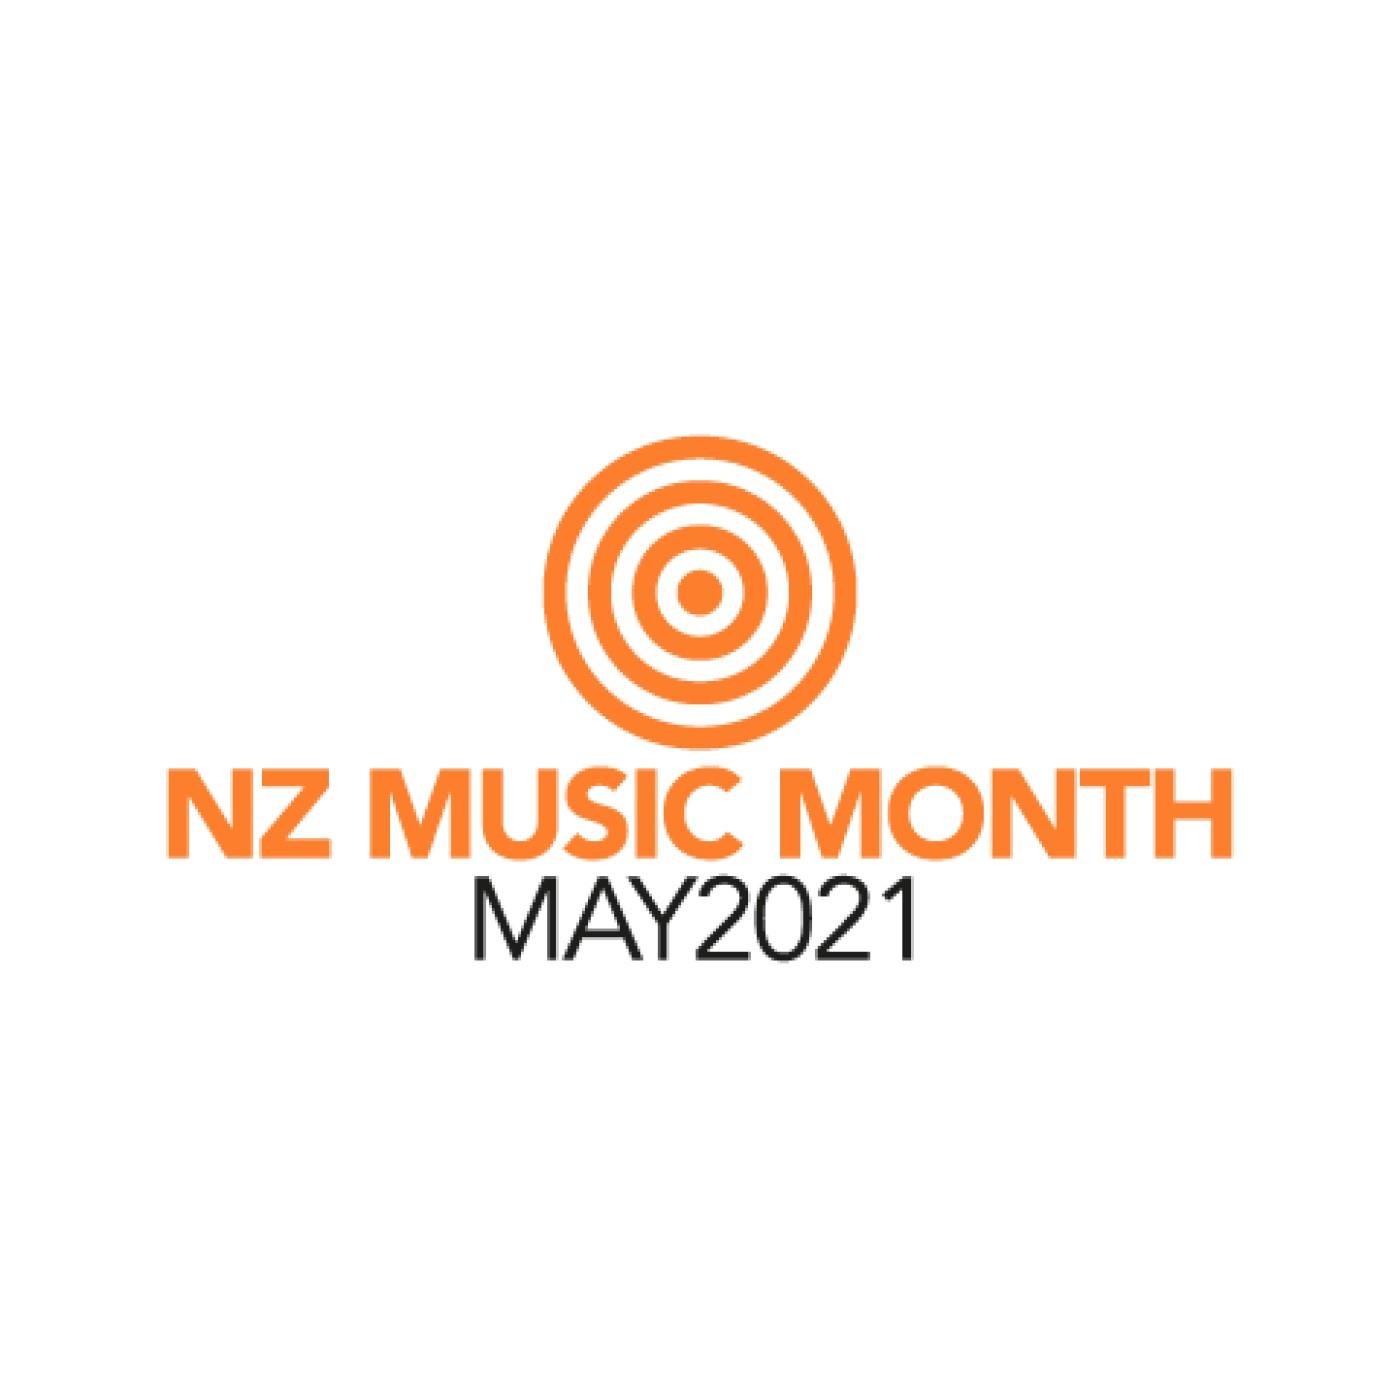 NZ Music Month Special-06-05-2021  Featuring Larry Morris - Th' Dudes - Brooke Fraser and more